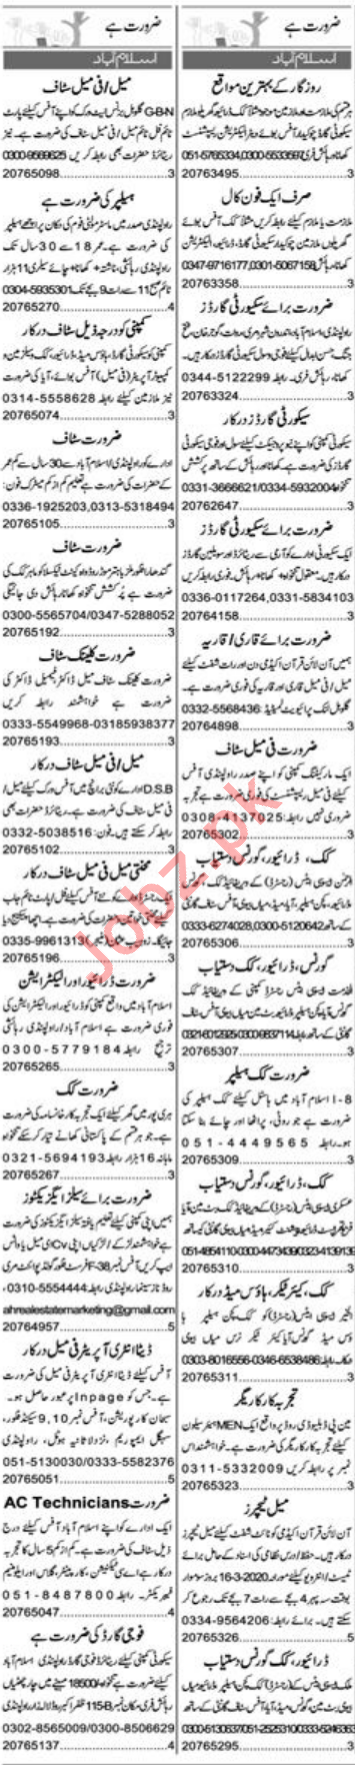 Express Sunday Islamabad Classified Ads 15th March 2020